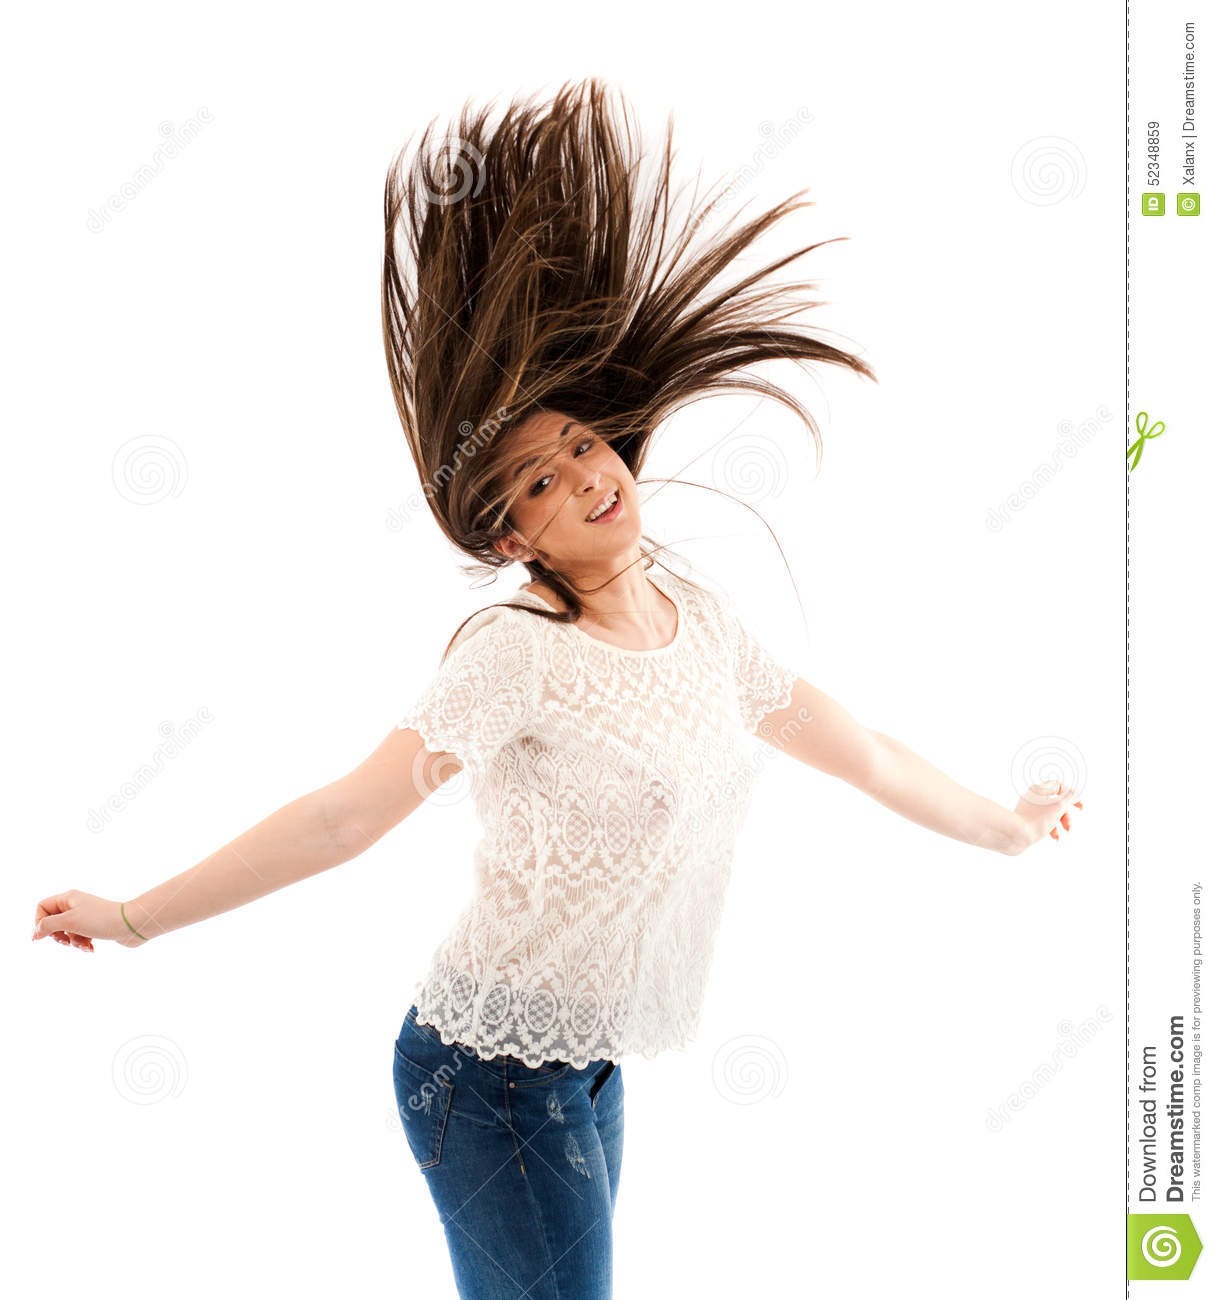 When a woman flips her hair